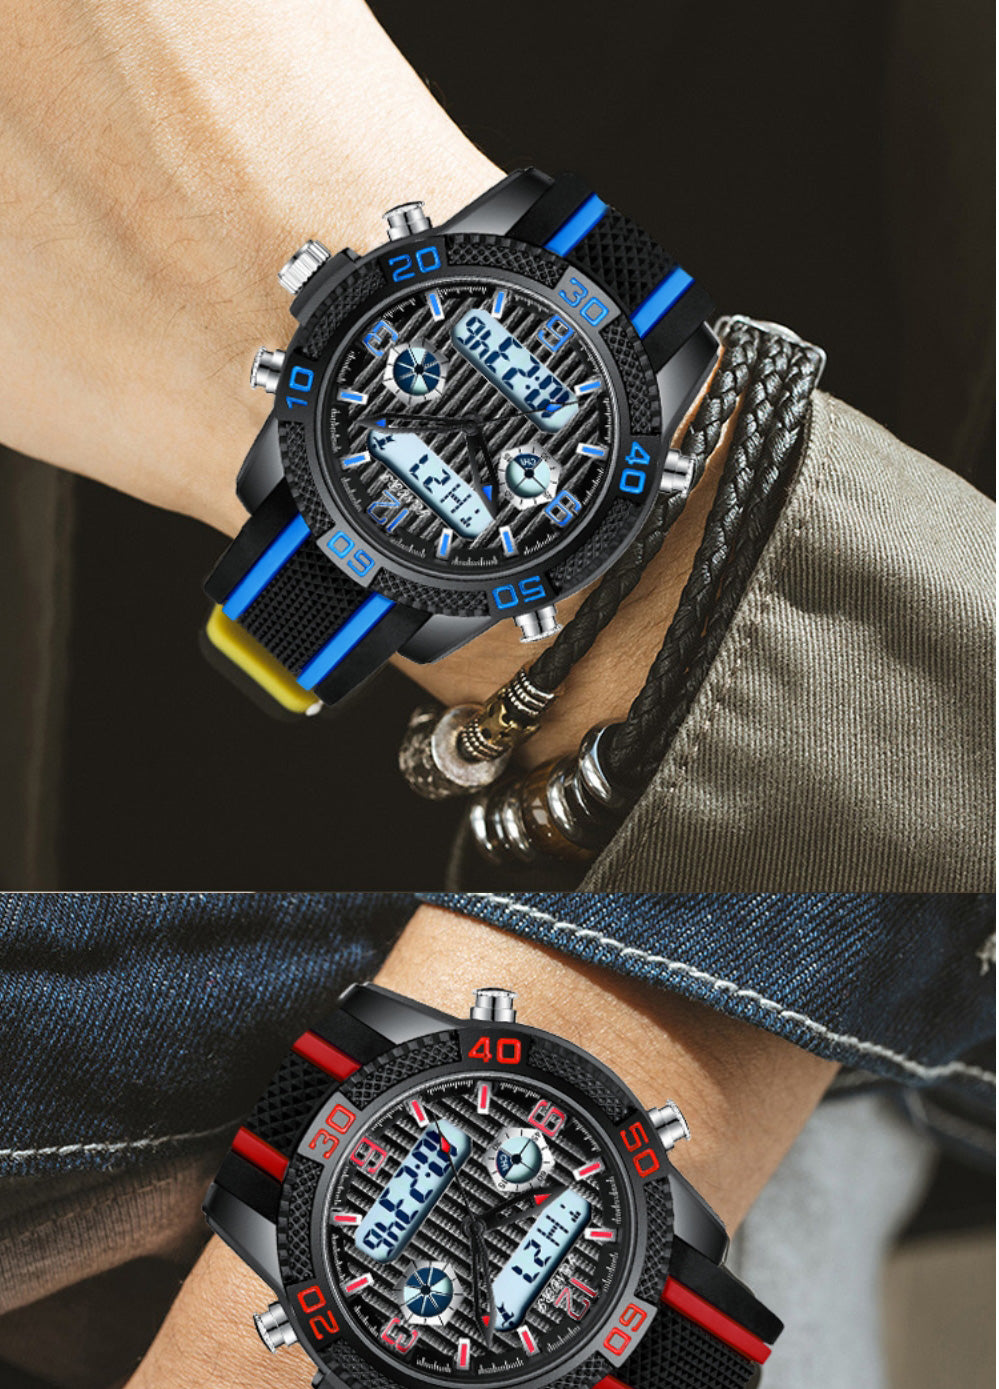 watches with both analog and digital display